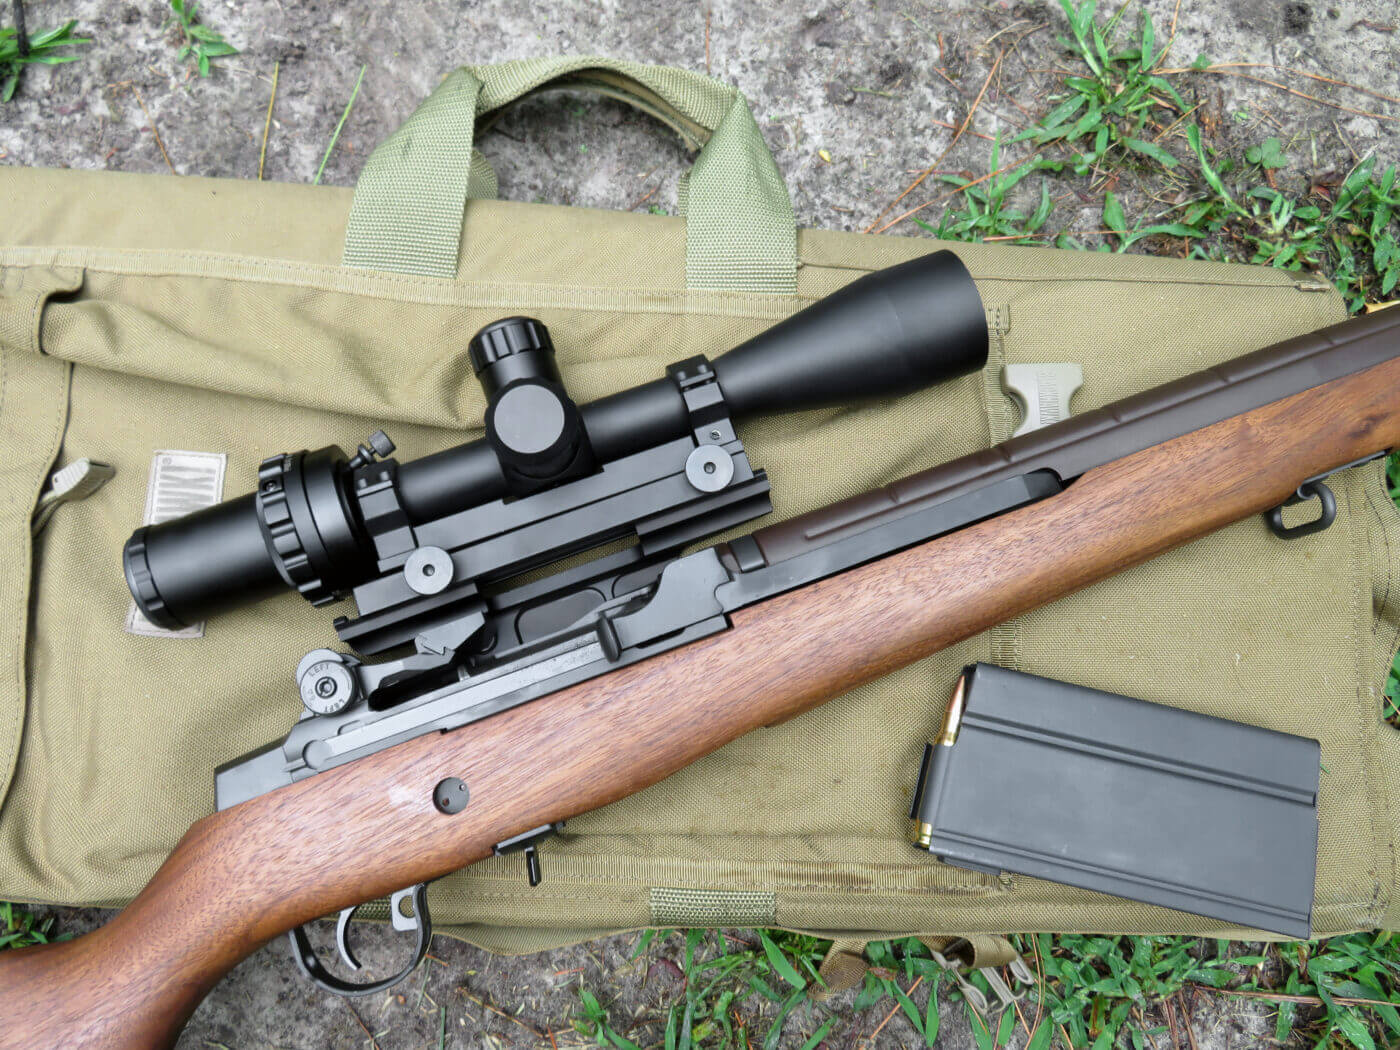 M1A with ART scope and accessories